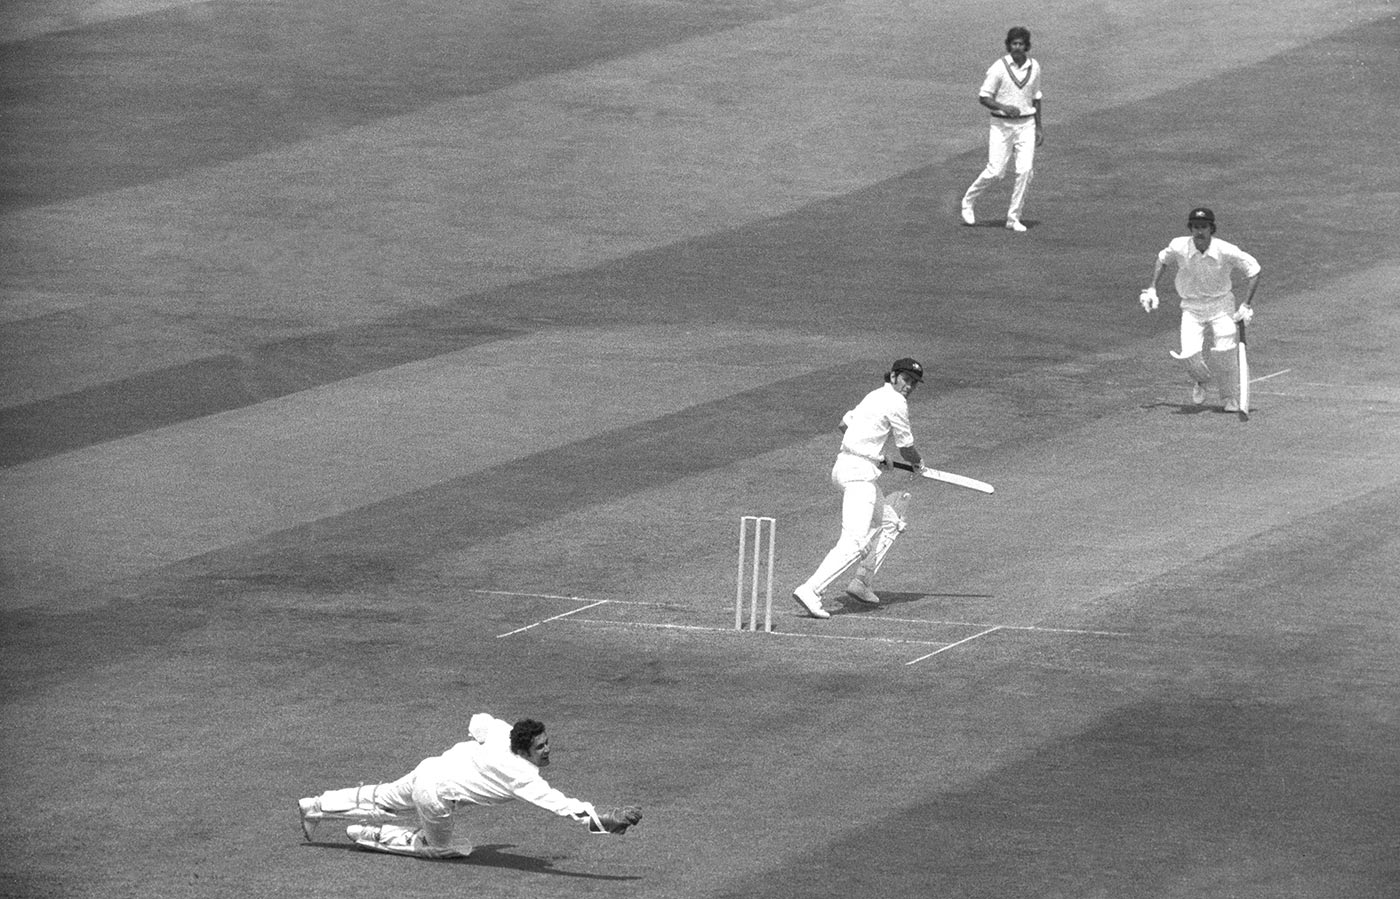 Wasim Bari does his thing against Australia in the 1975 World Cup